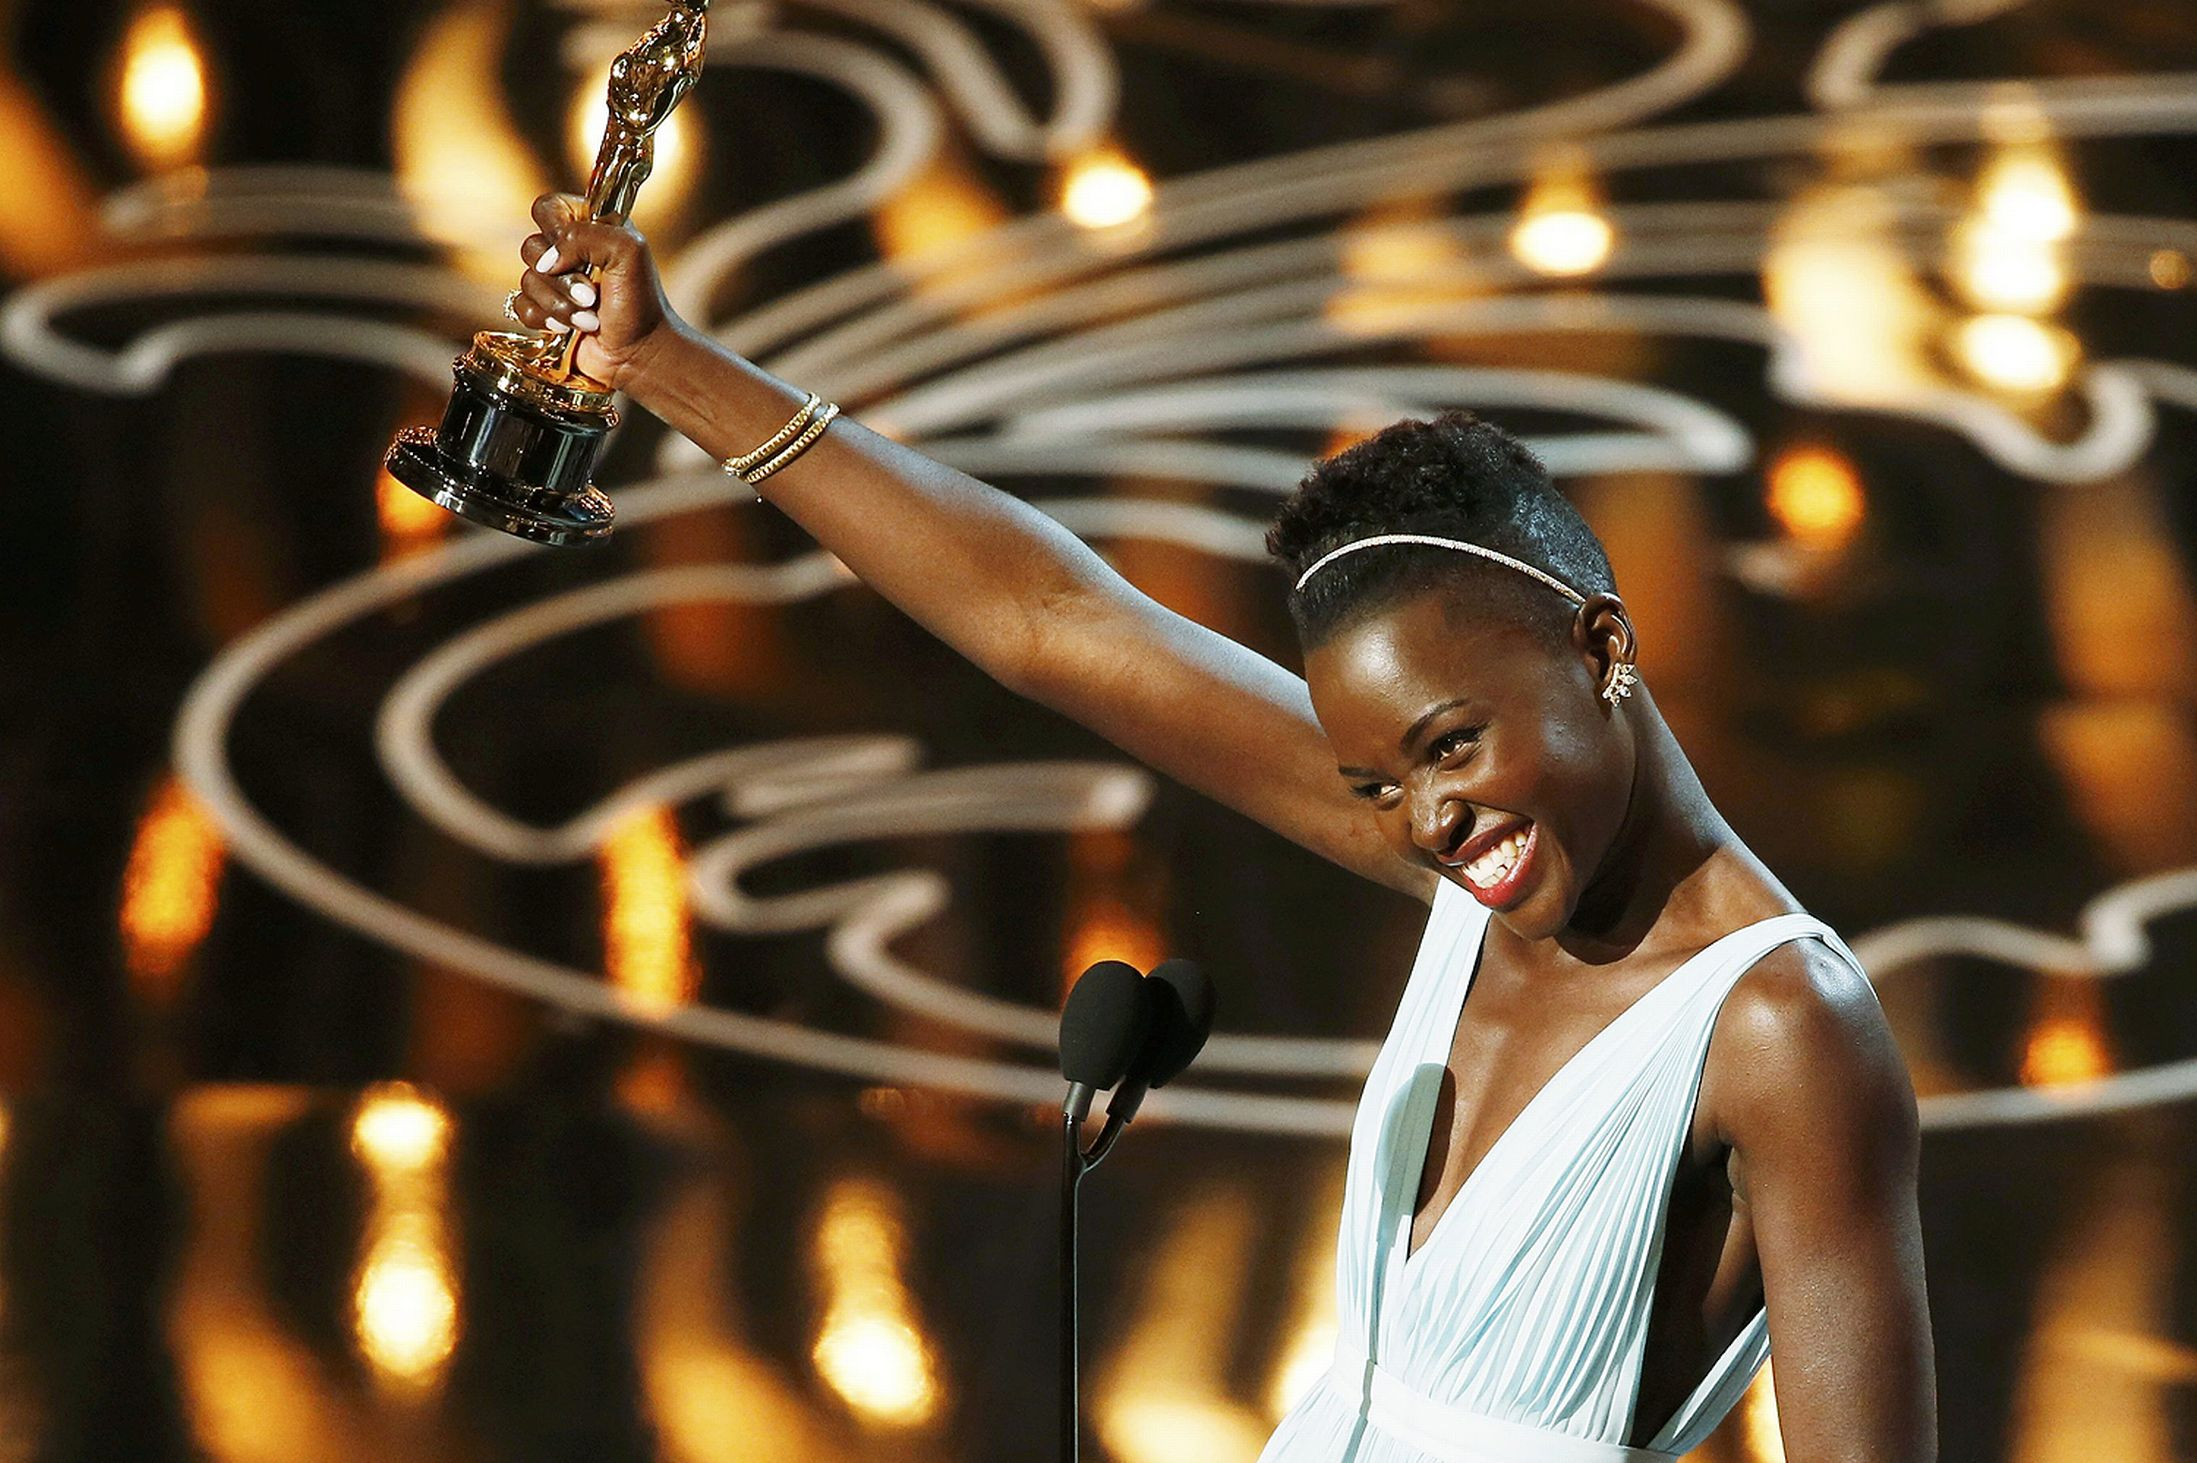 Lupita-Nyongo-wins-best-supporting-actress_Reuters